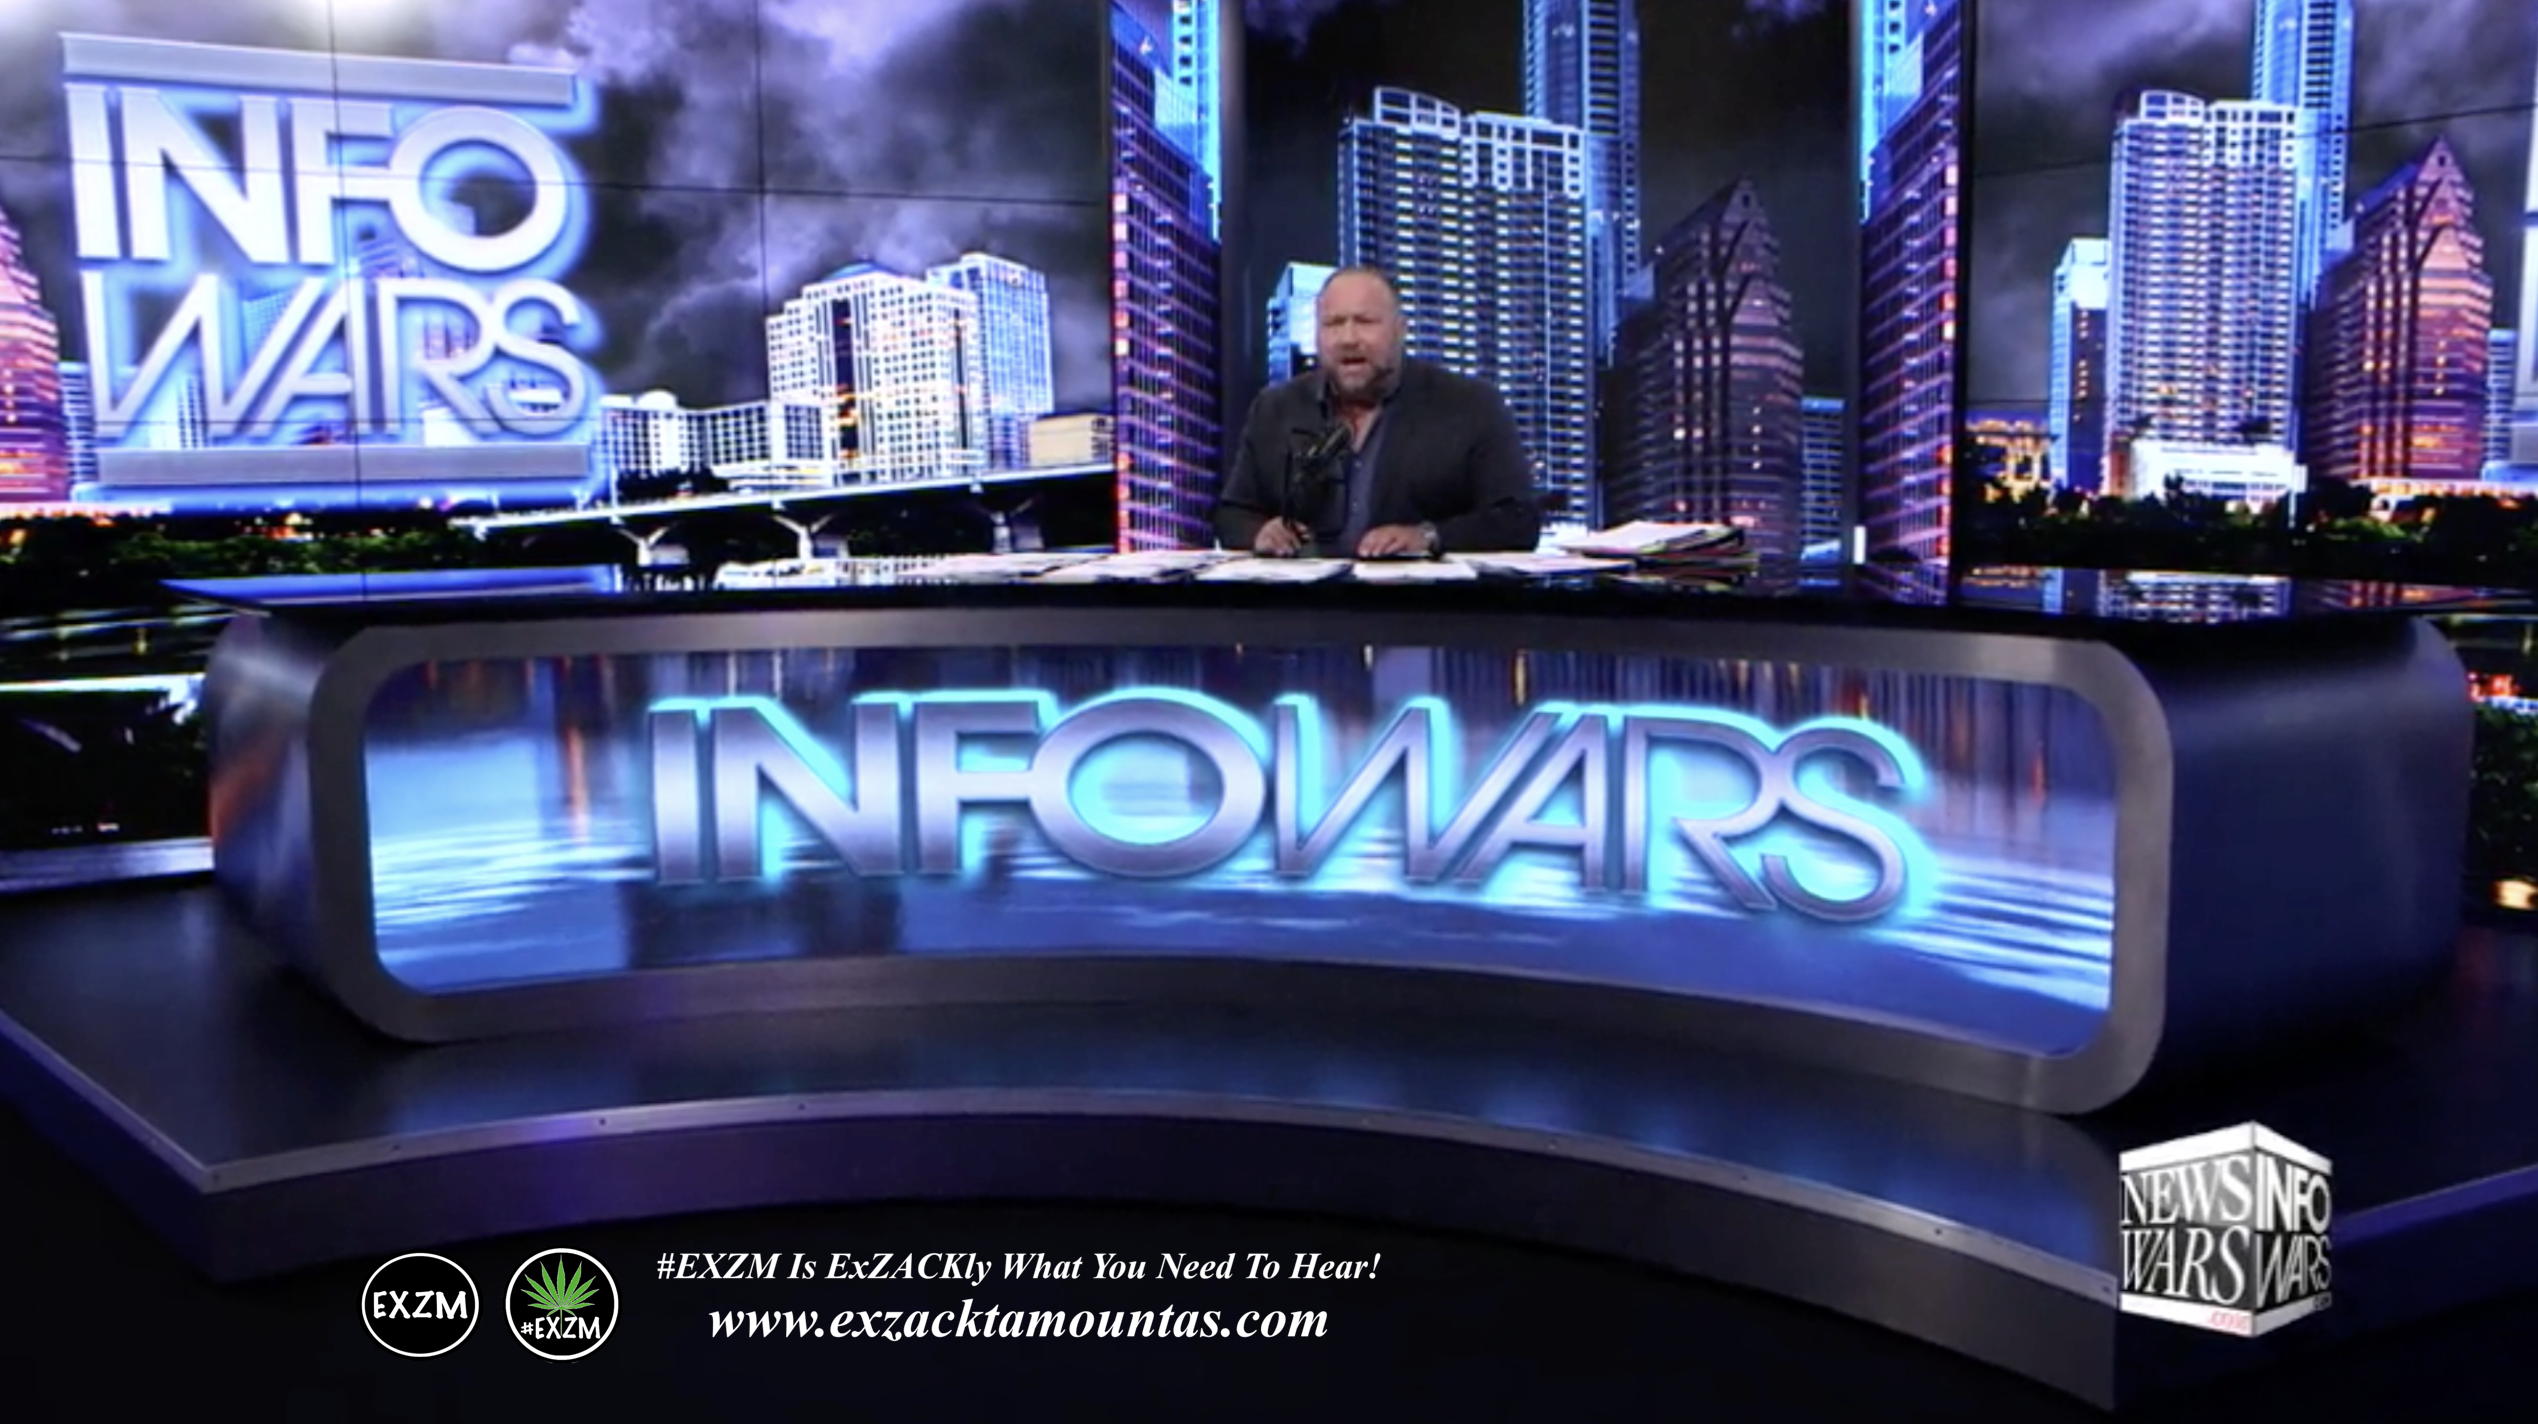 Alex Jones Live Infowars Studio EXZM Zack Mount April 27th 2021 copy